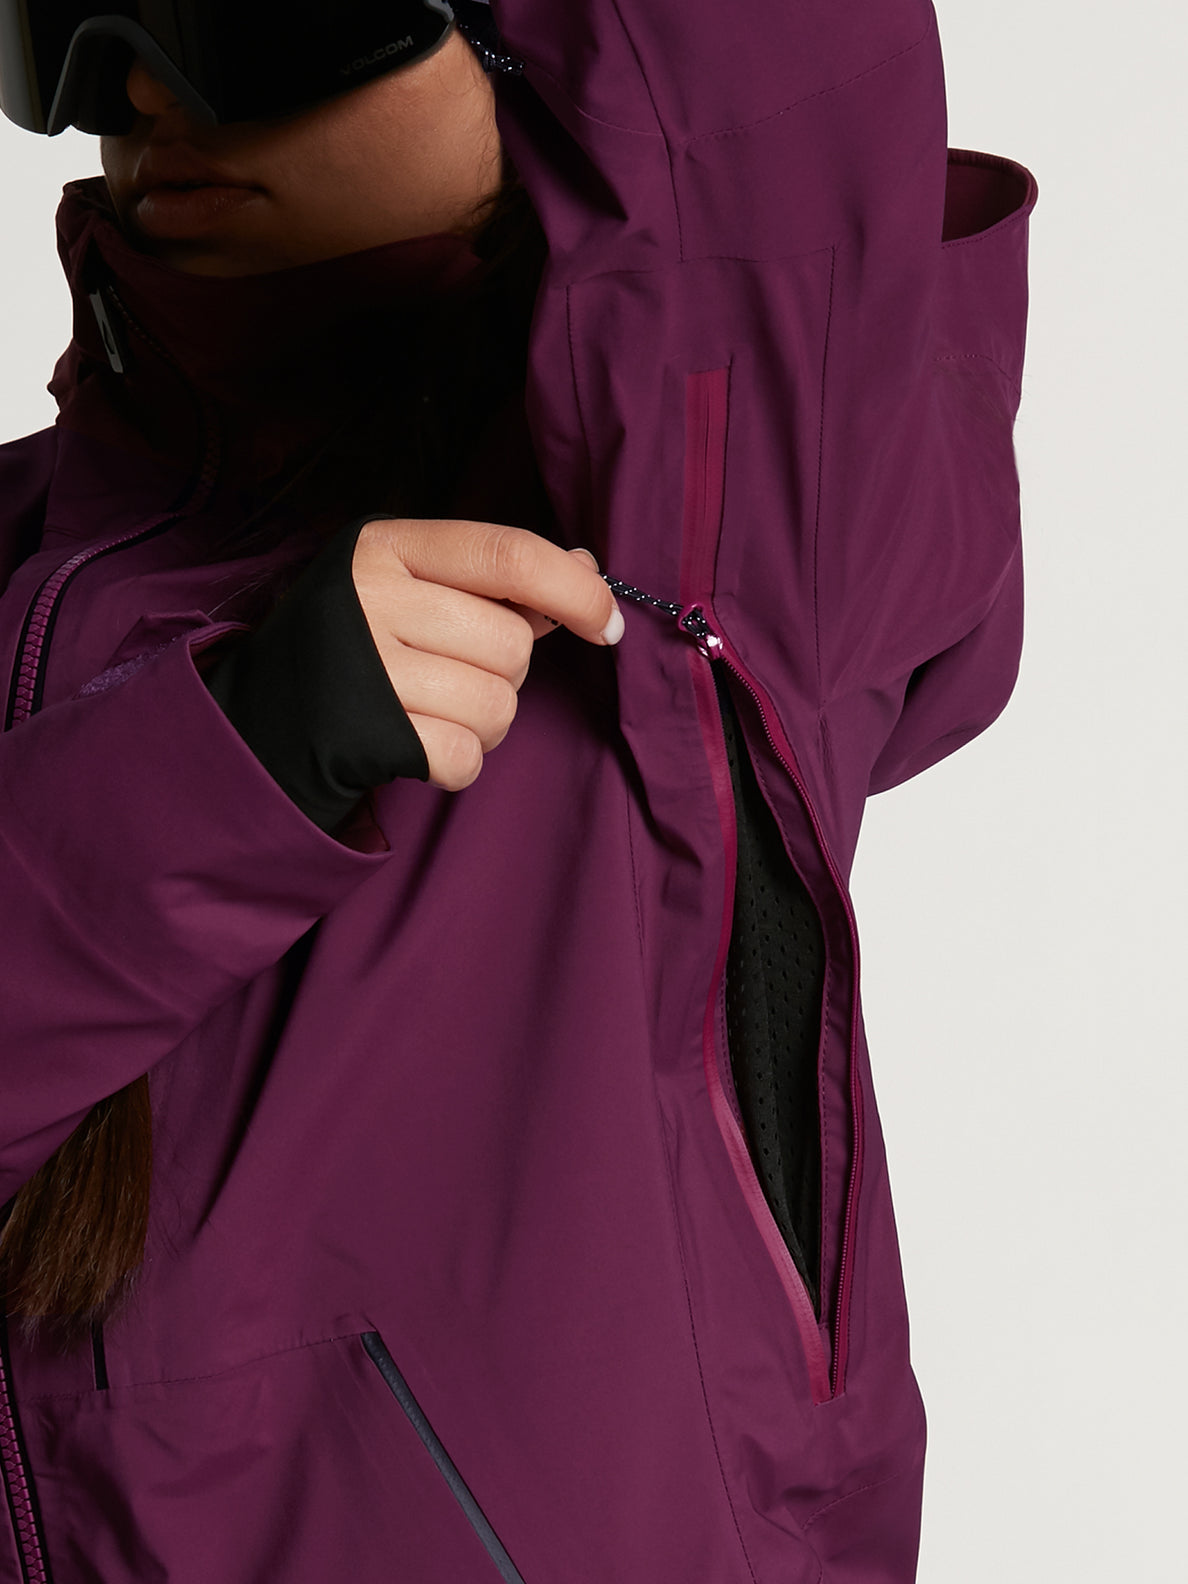 Womens VS Stretch GORE-TEX Jacket - Vibrant Purple (H0652103_VIB) [8]